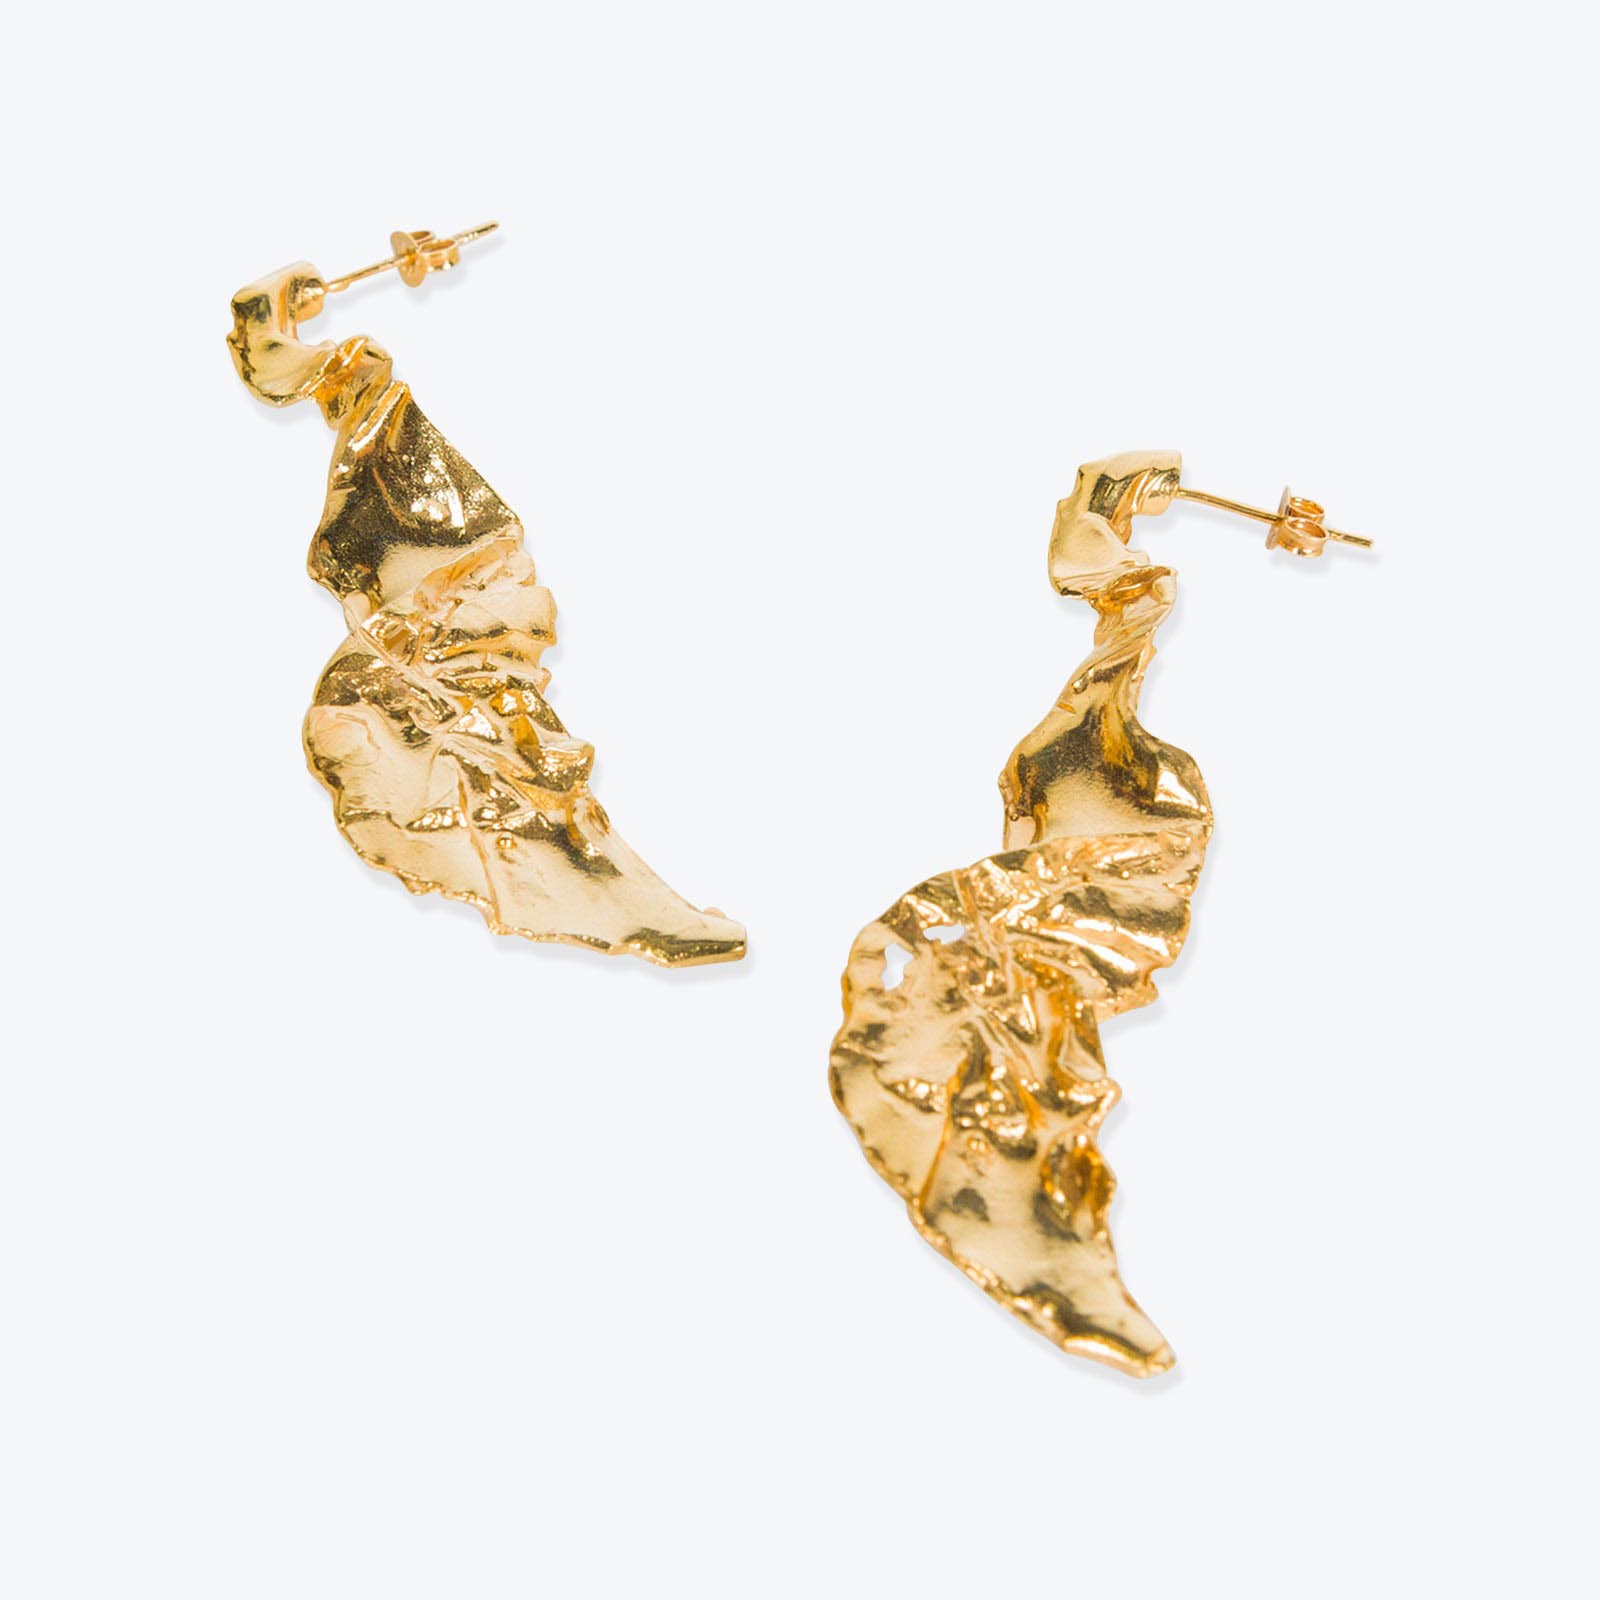 Yosemite Stud, Gold Plated Pair of Earrings by By Nye